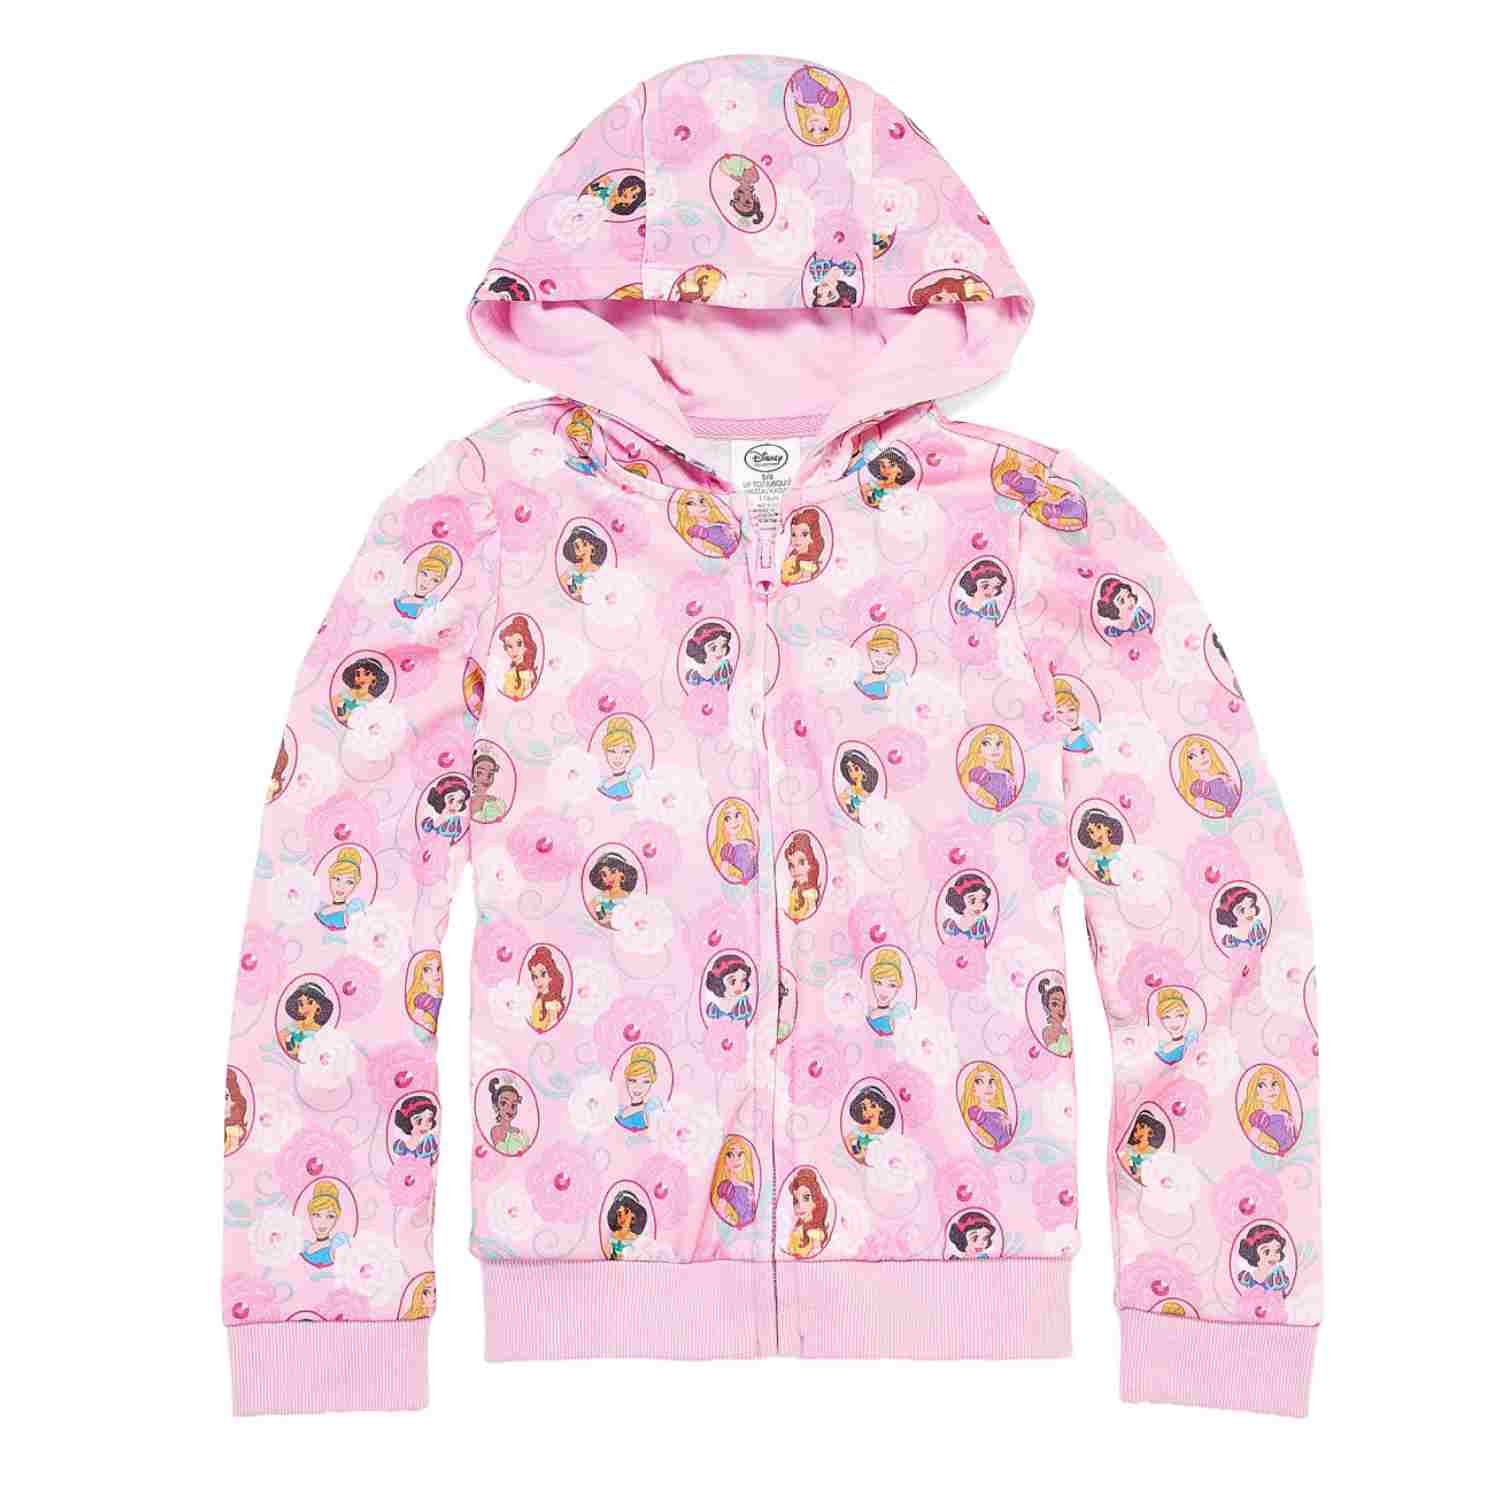 Disney Princess Hoodie for Girls Pink